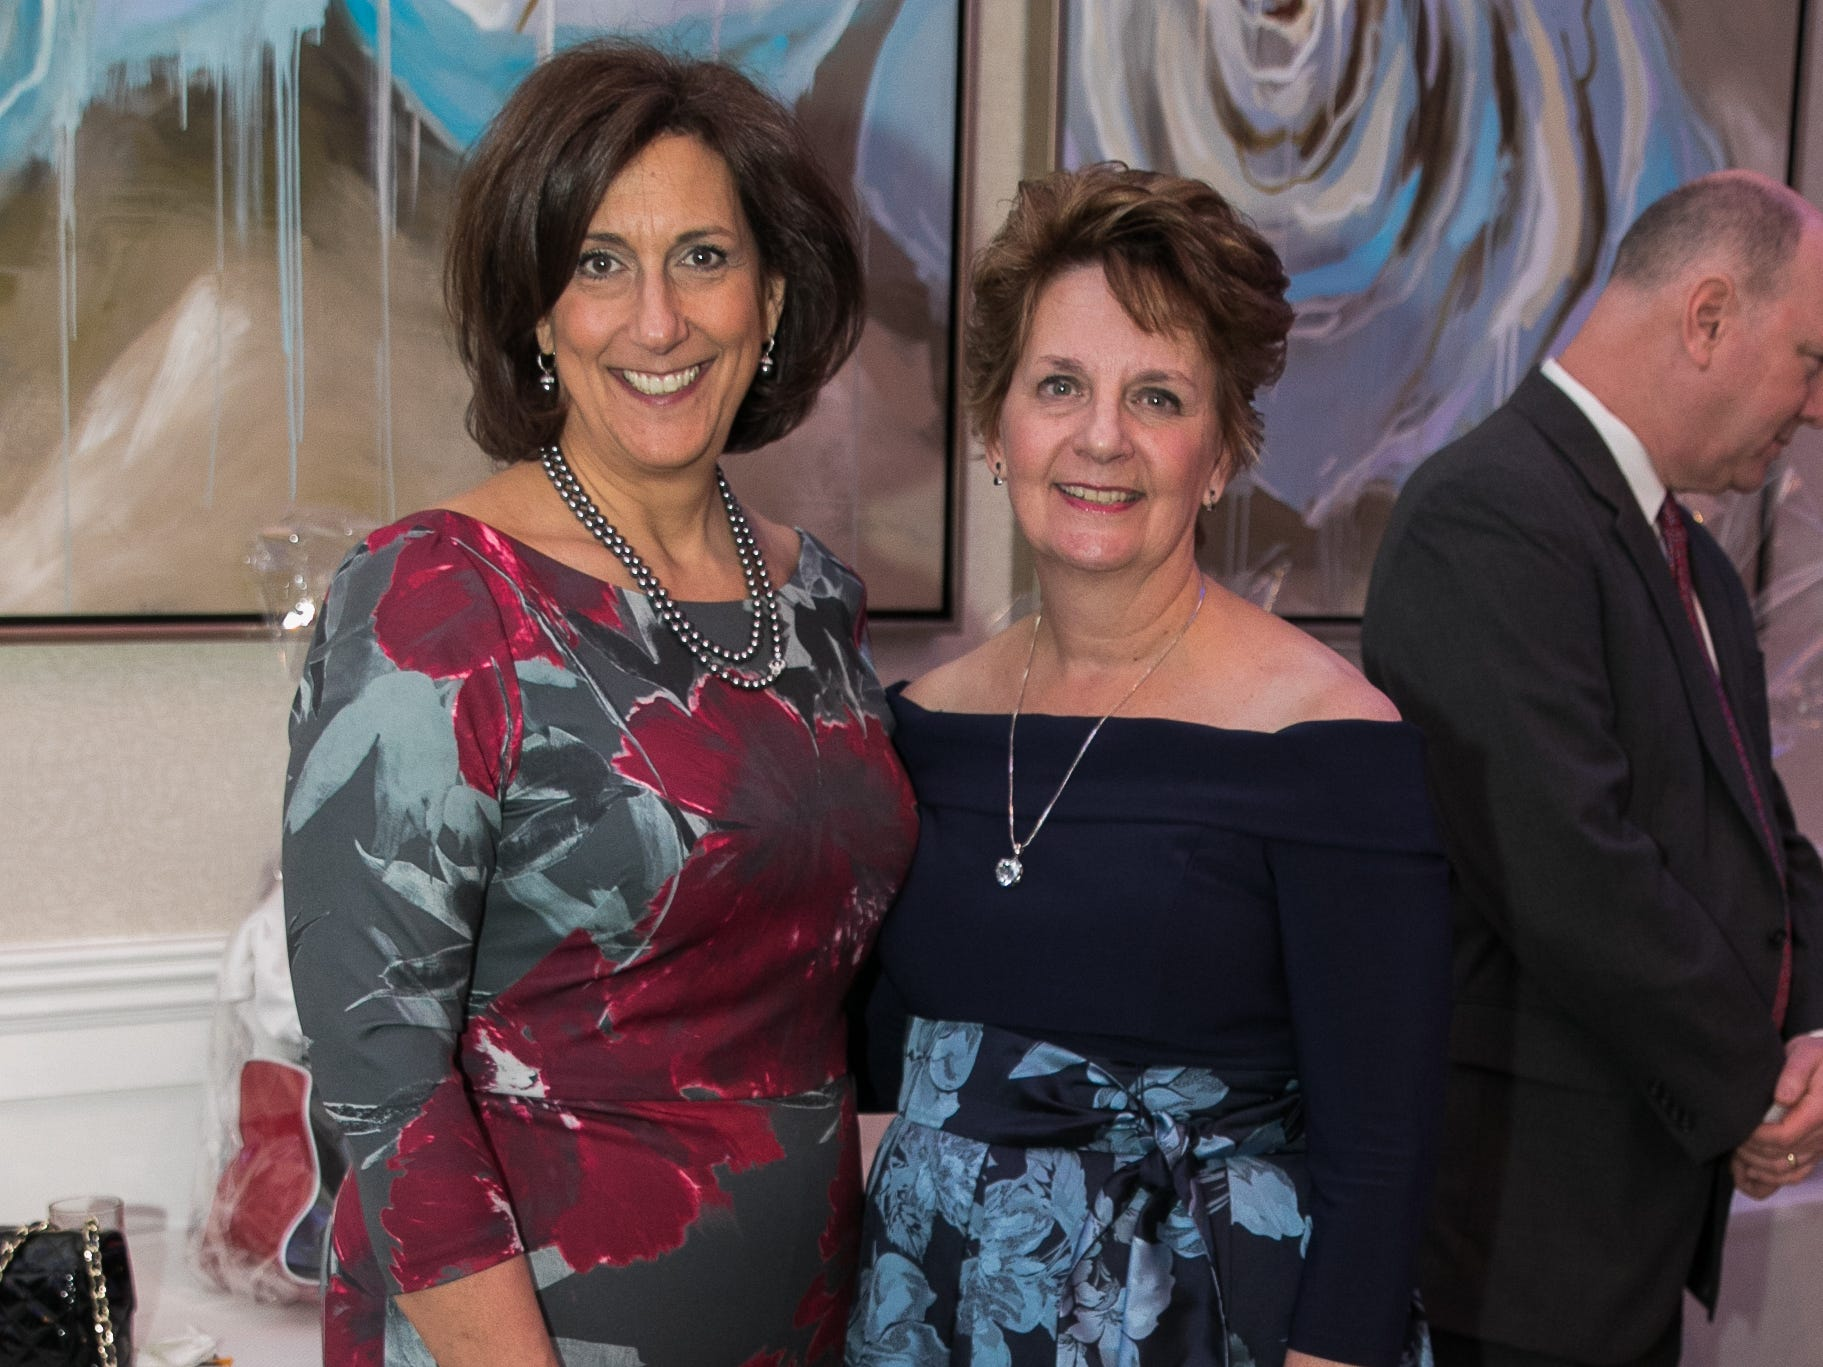 Jean Miller- Principal AHA, Melinda Hanlon- President AHA. Academy of The Holy Angels held their 22nd annual Angelic Evening at Edgewood Country Club in RiverVale. 03/22/2019